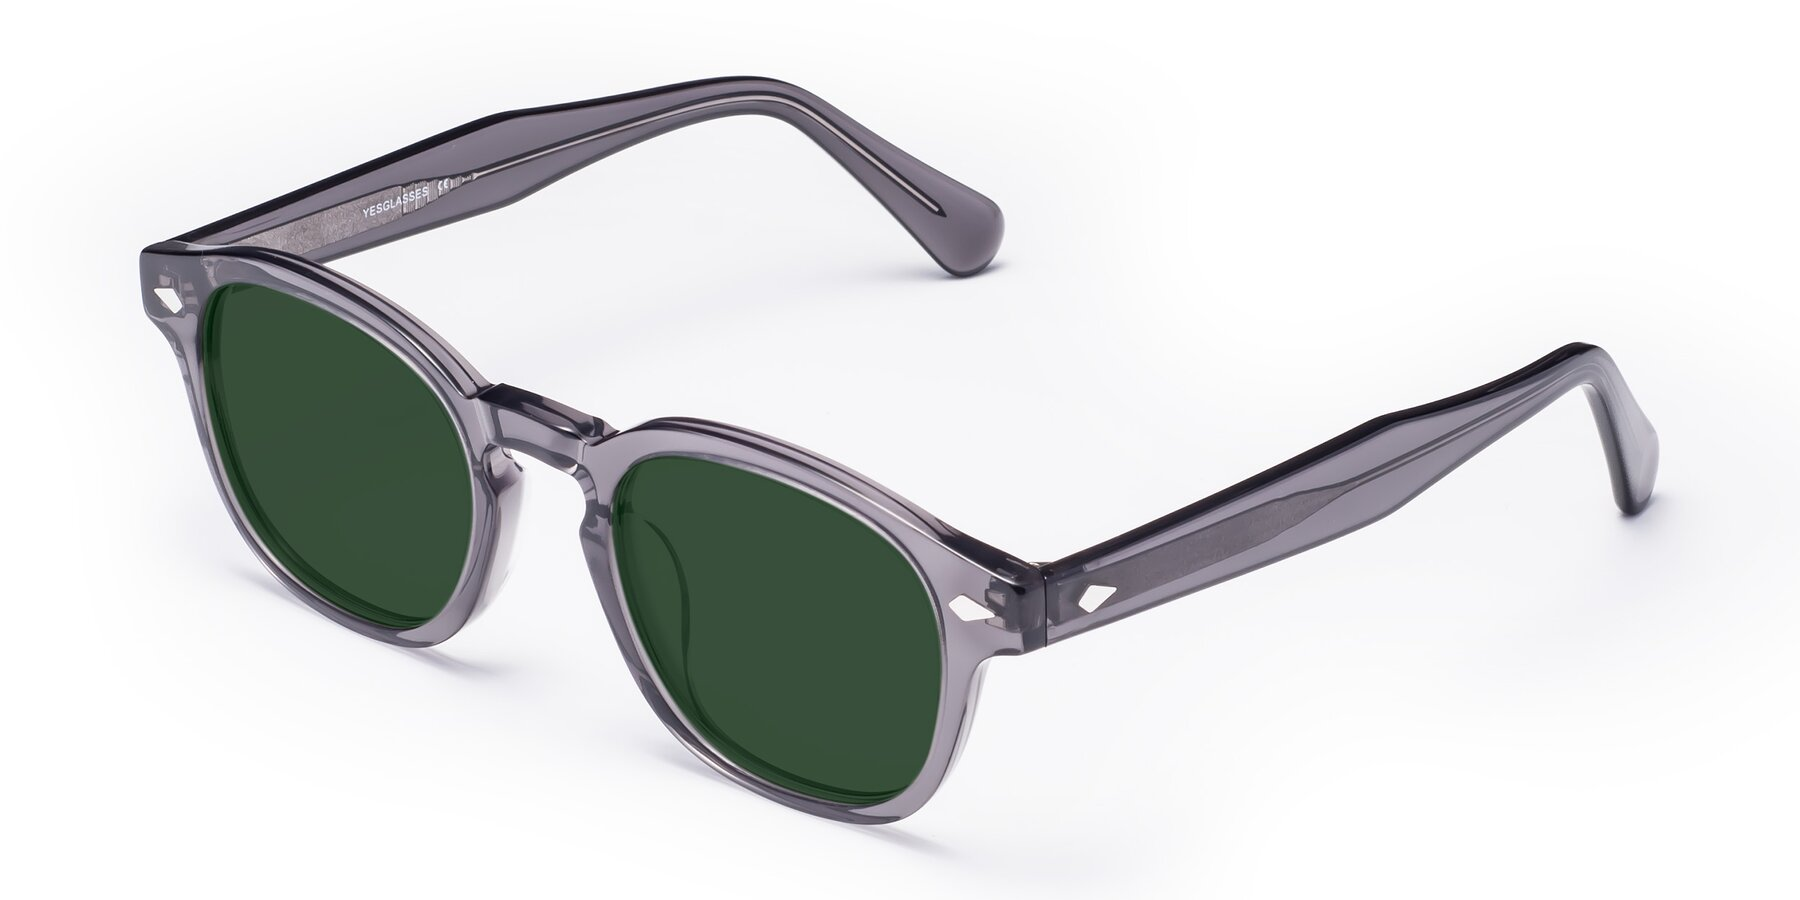 Angle of WALL-E in Translucent Gray with Green Tinted Lenses